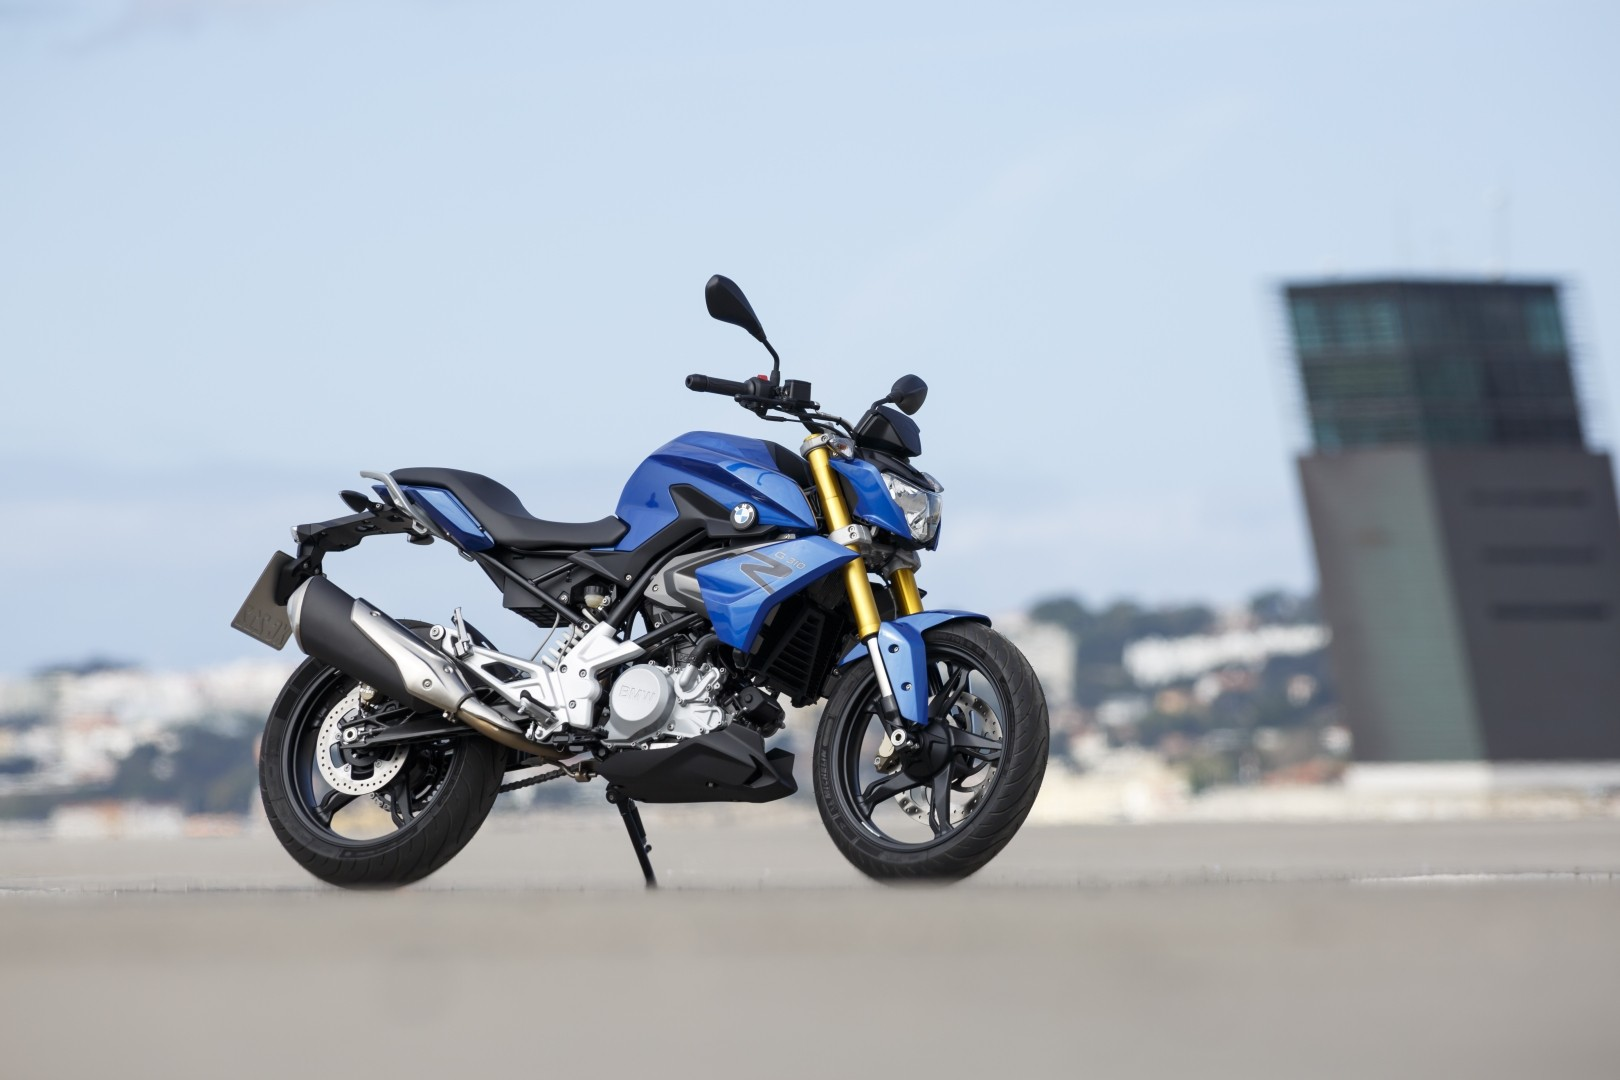 2016 BMW G310R Blue Color